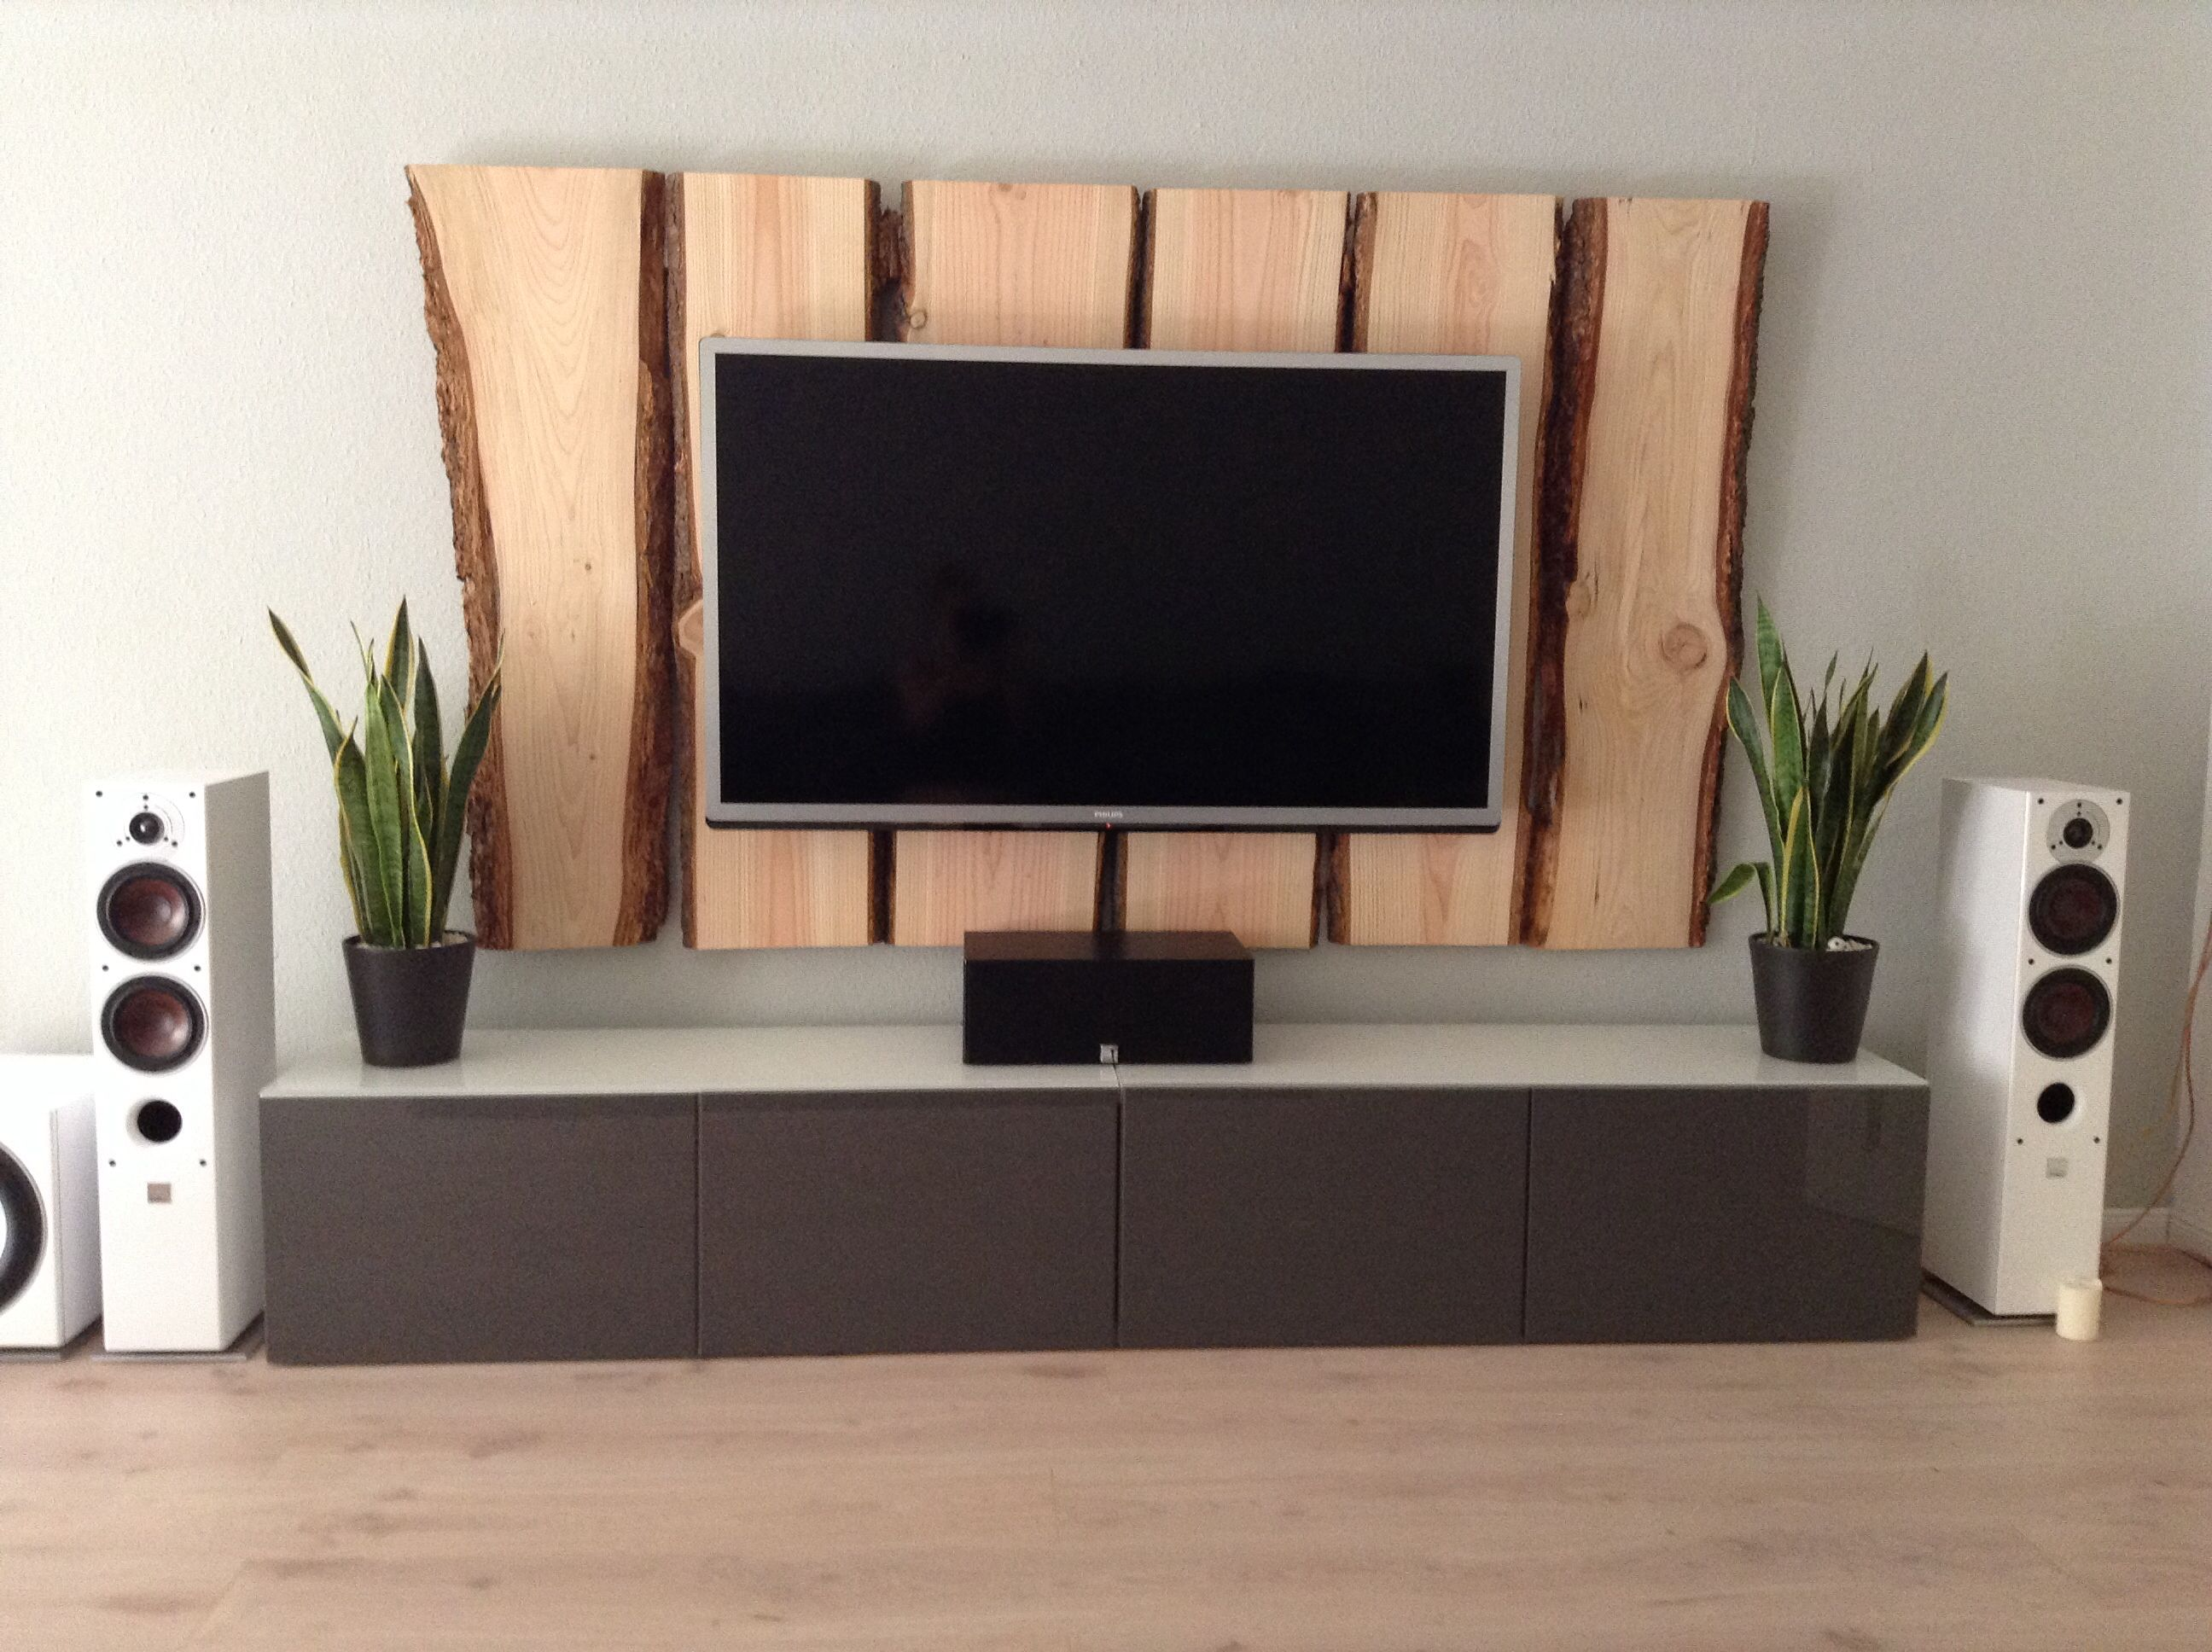 holz tv wand tv wall wood deko und so pinterest. Black Bedroom Furniture Sets. Home Design Ideas